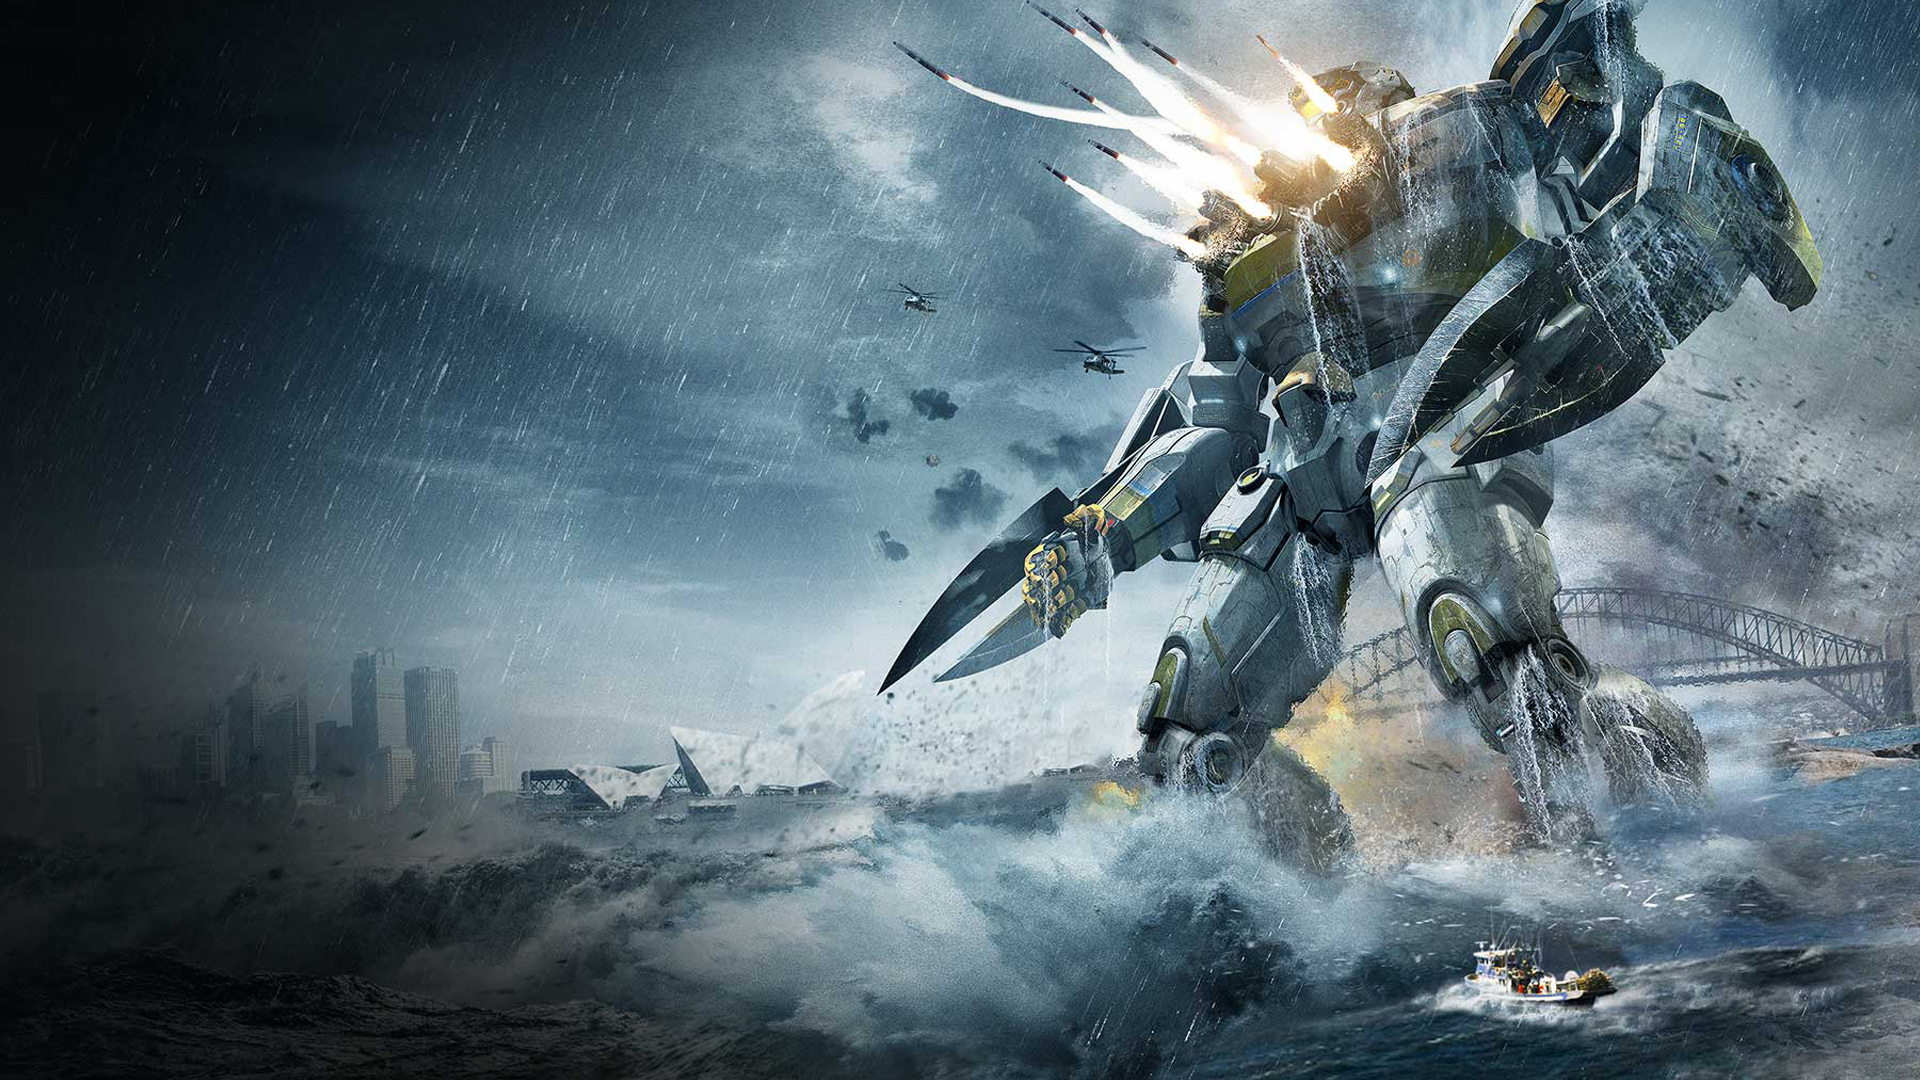 Striker Eureka in Pacific Rim